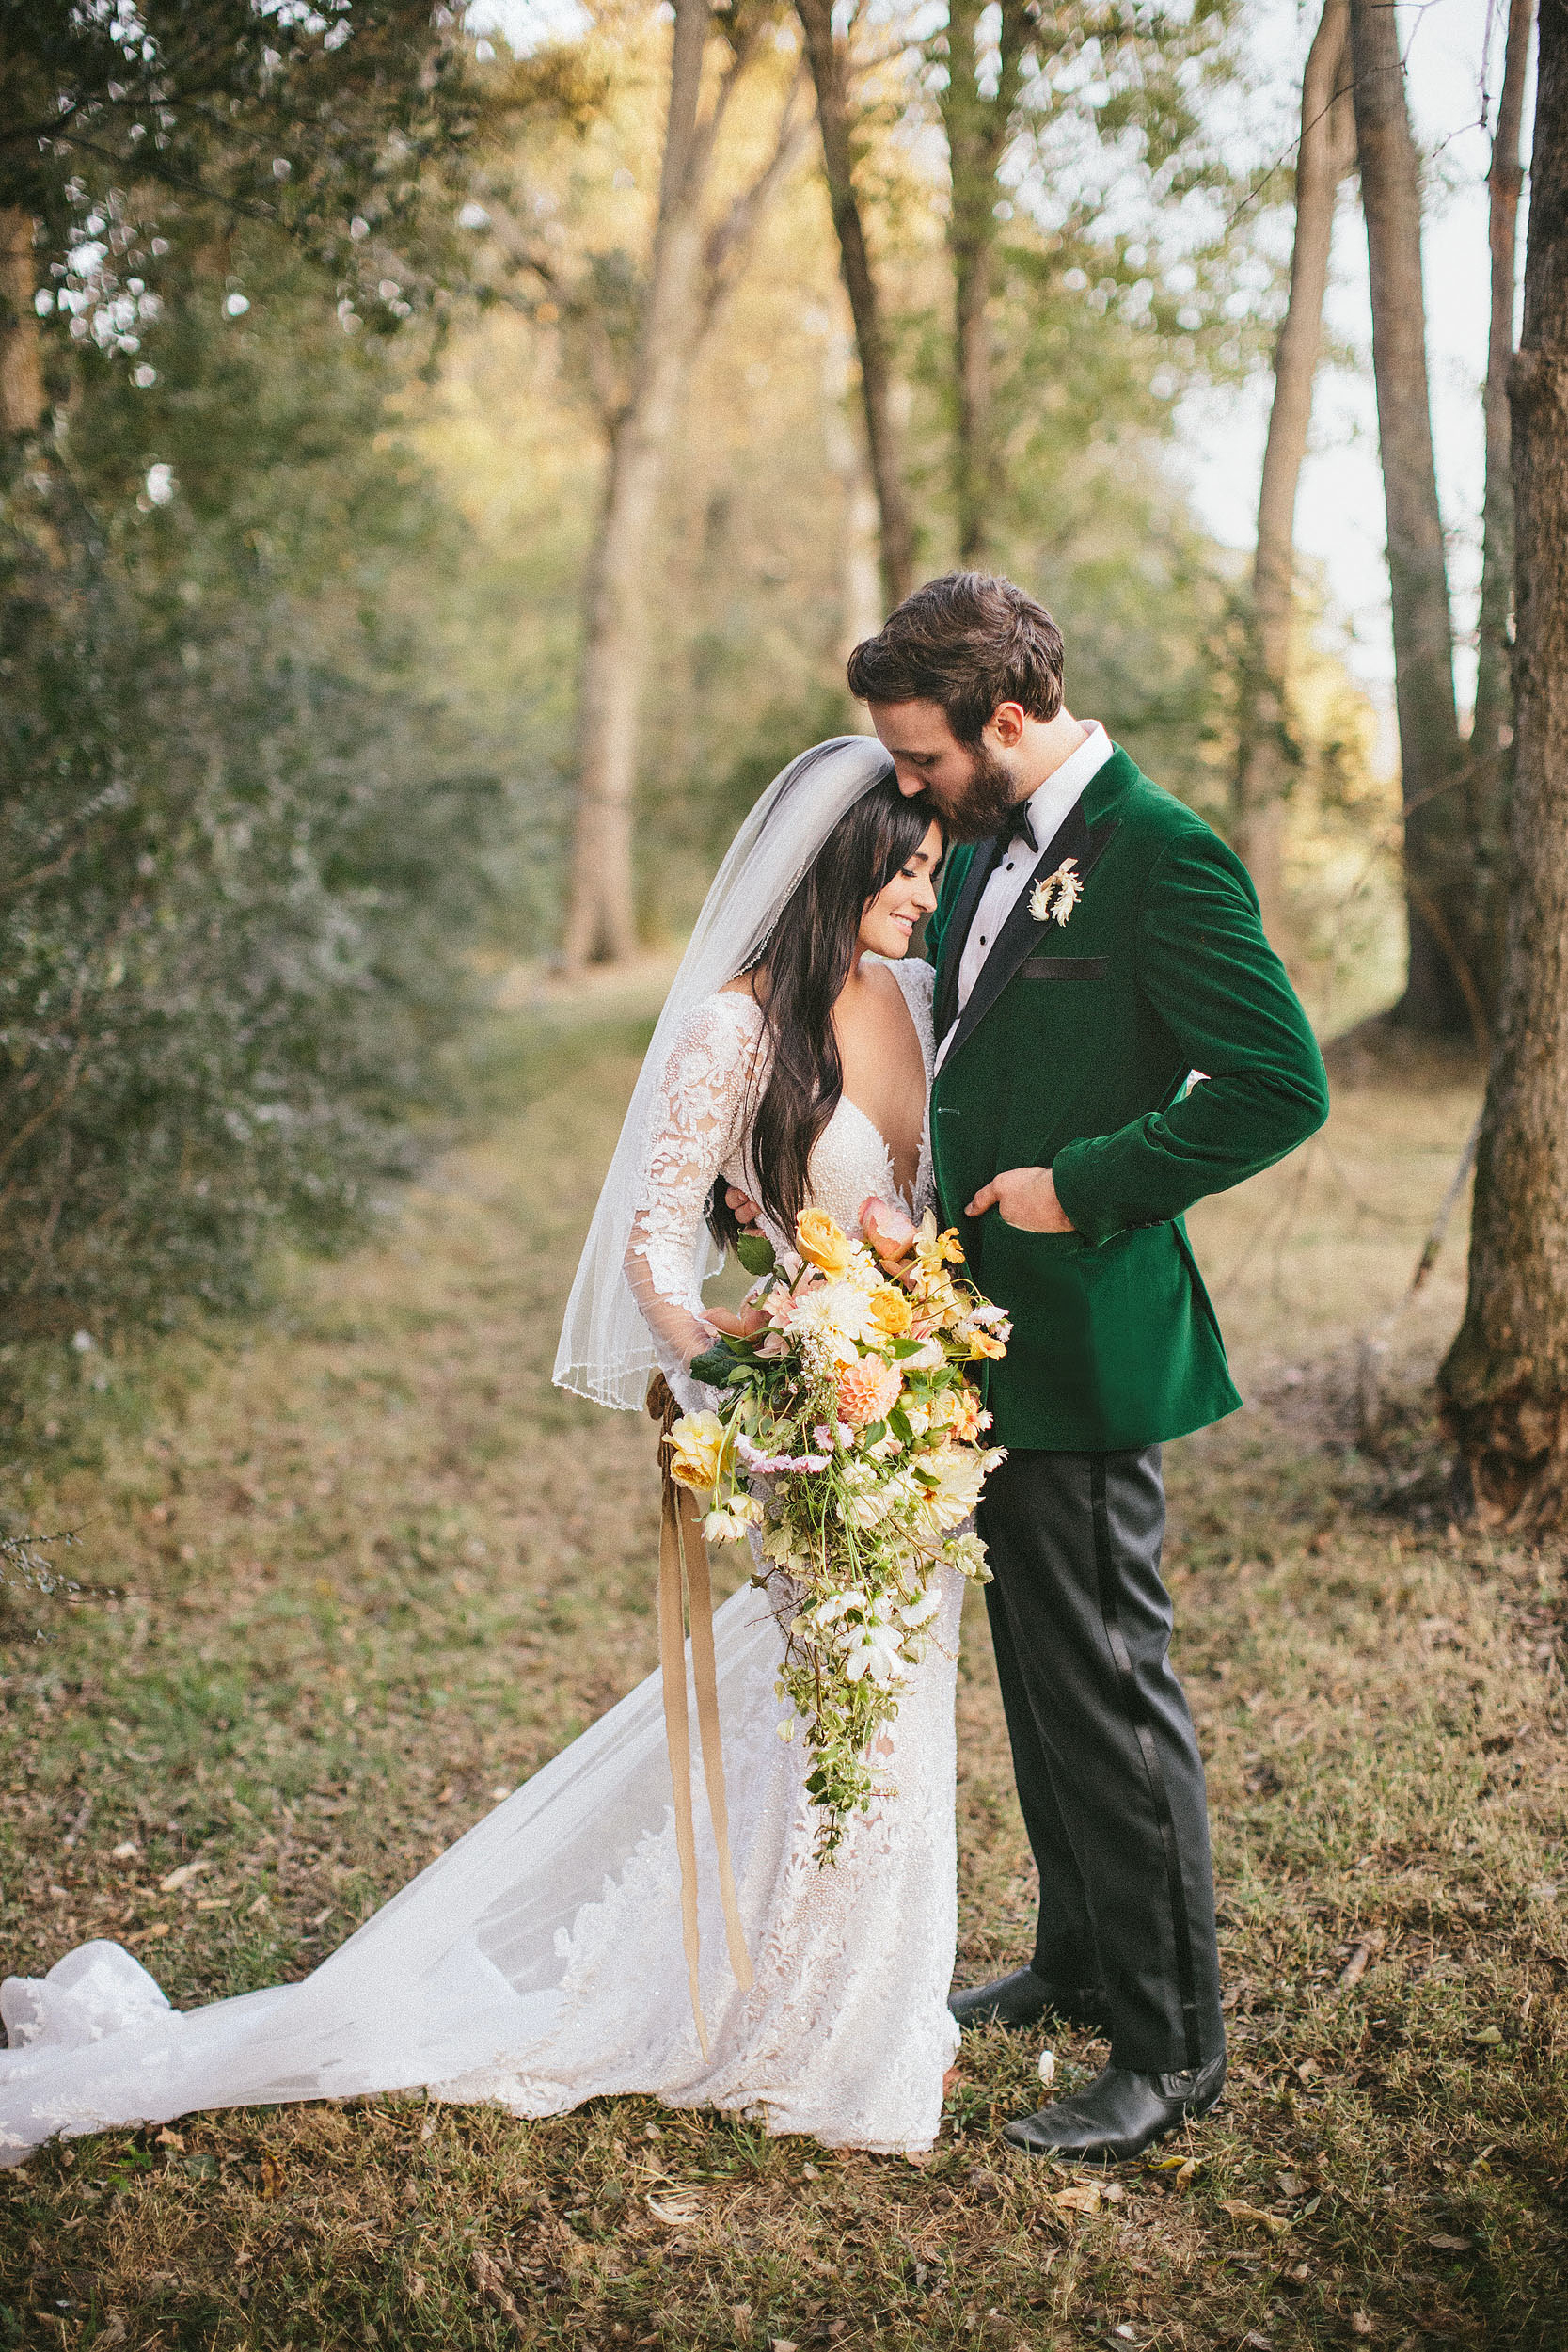 Kacey Musgraves and Ruston Kelly's Charming Tennessee Wedding